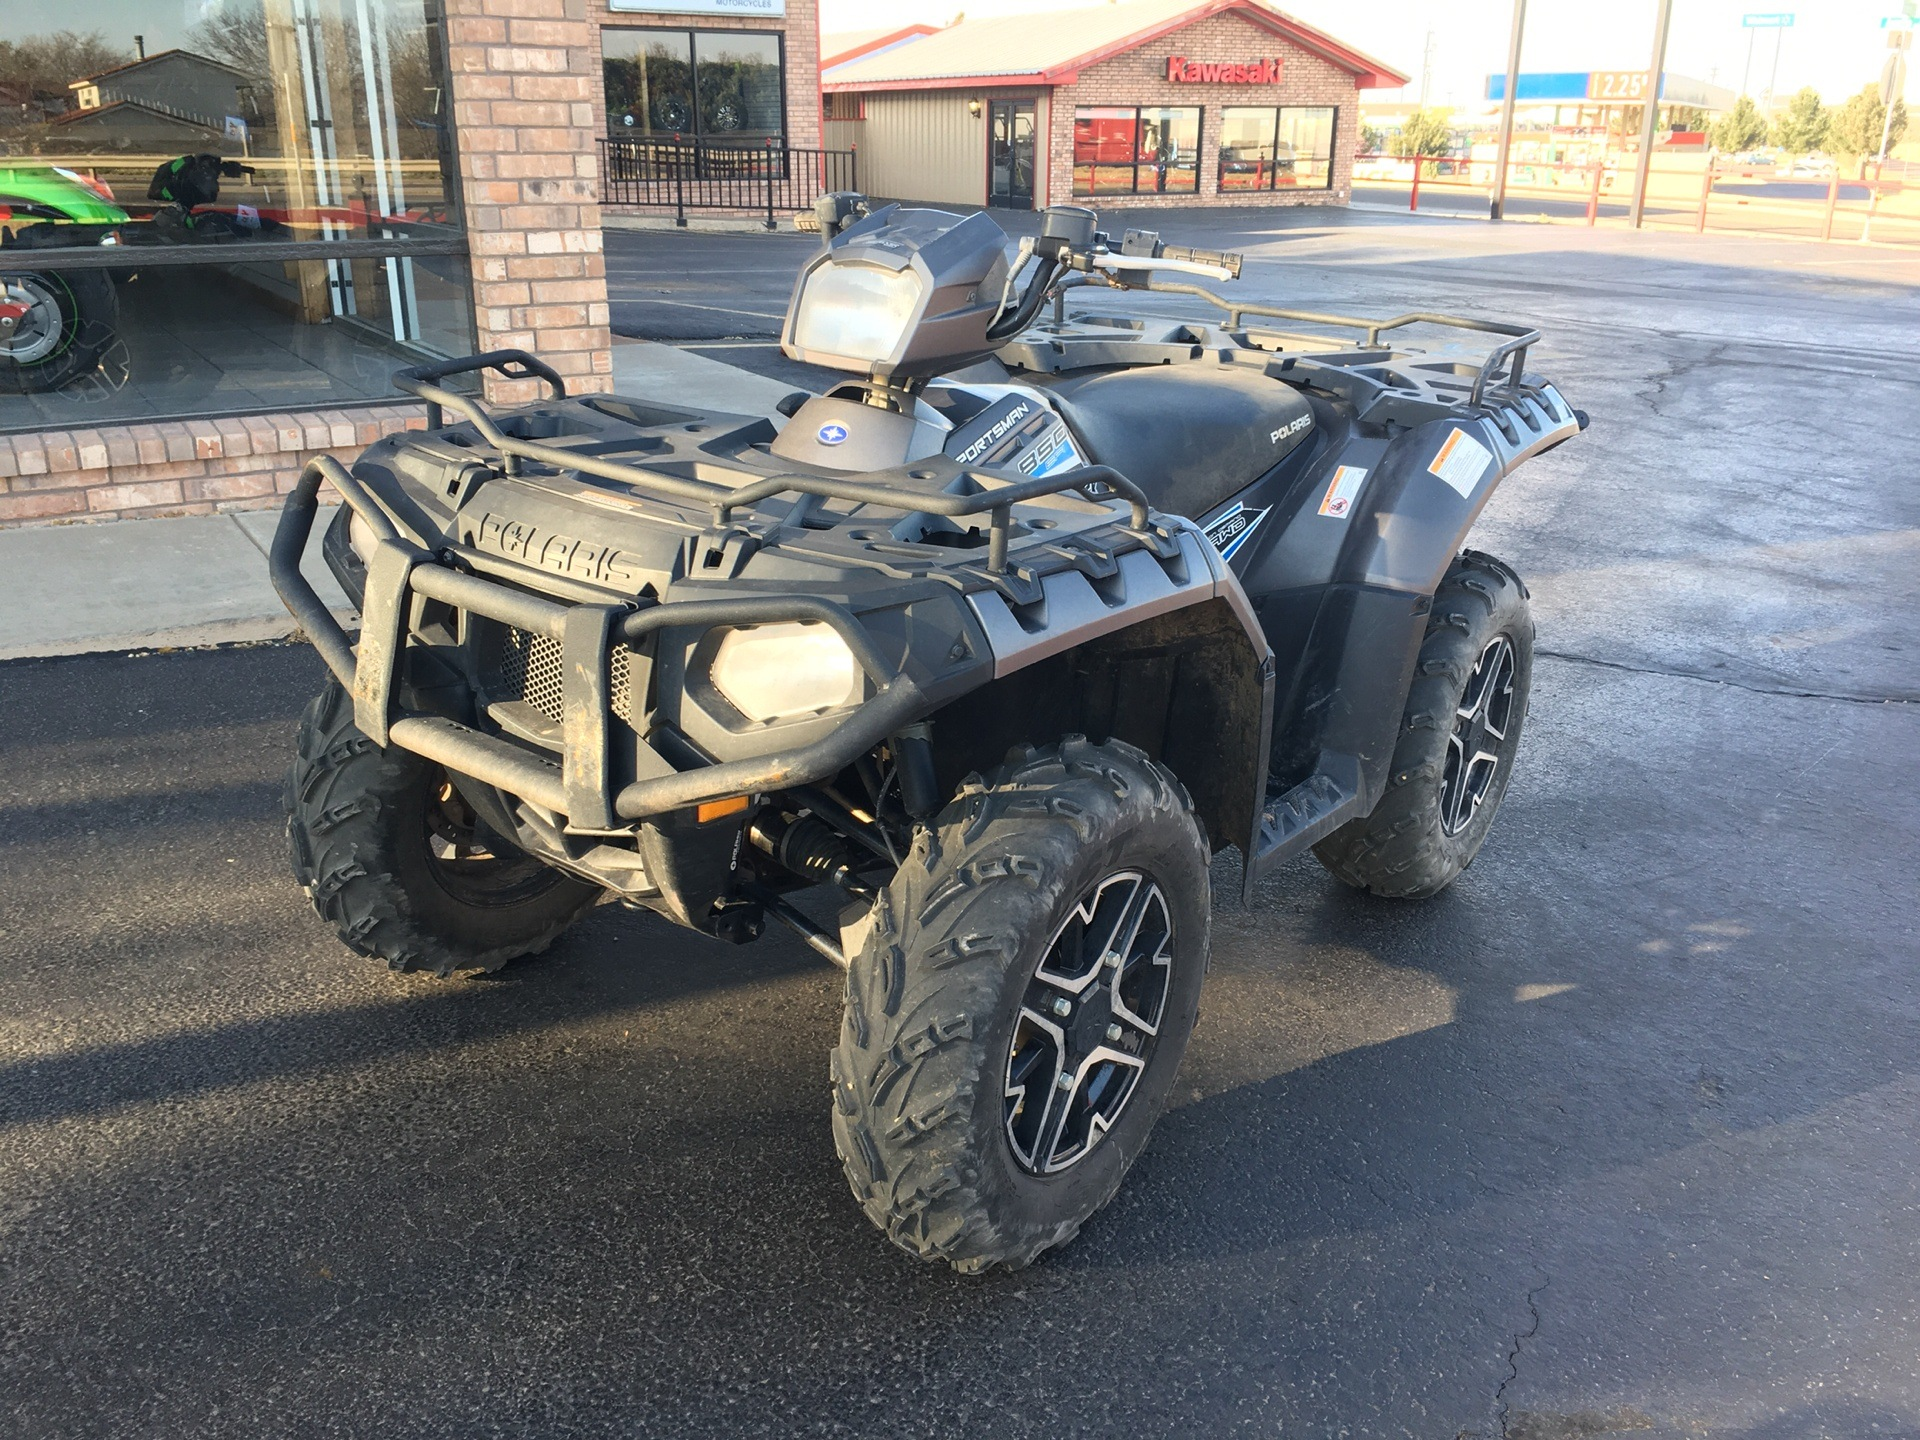 2016 Polaris 850 in Amarillo, Texas